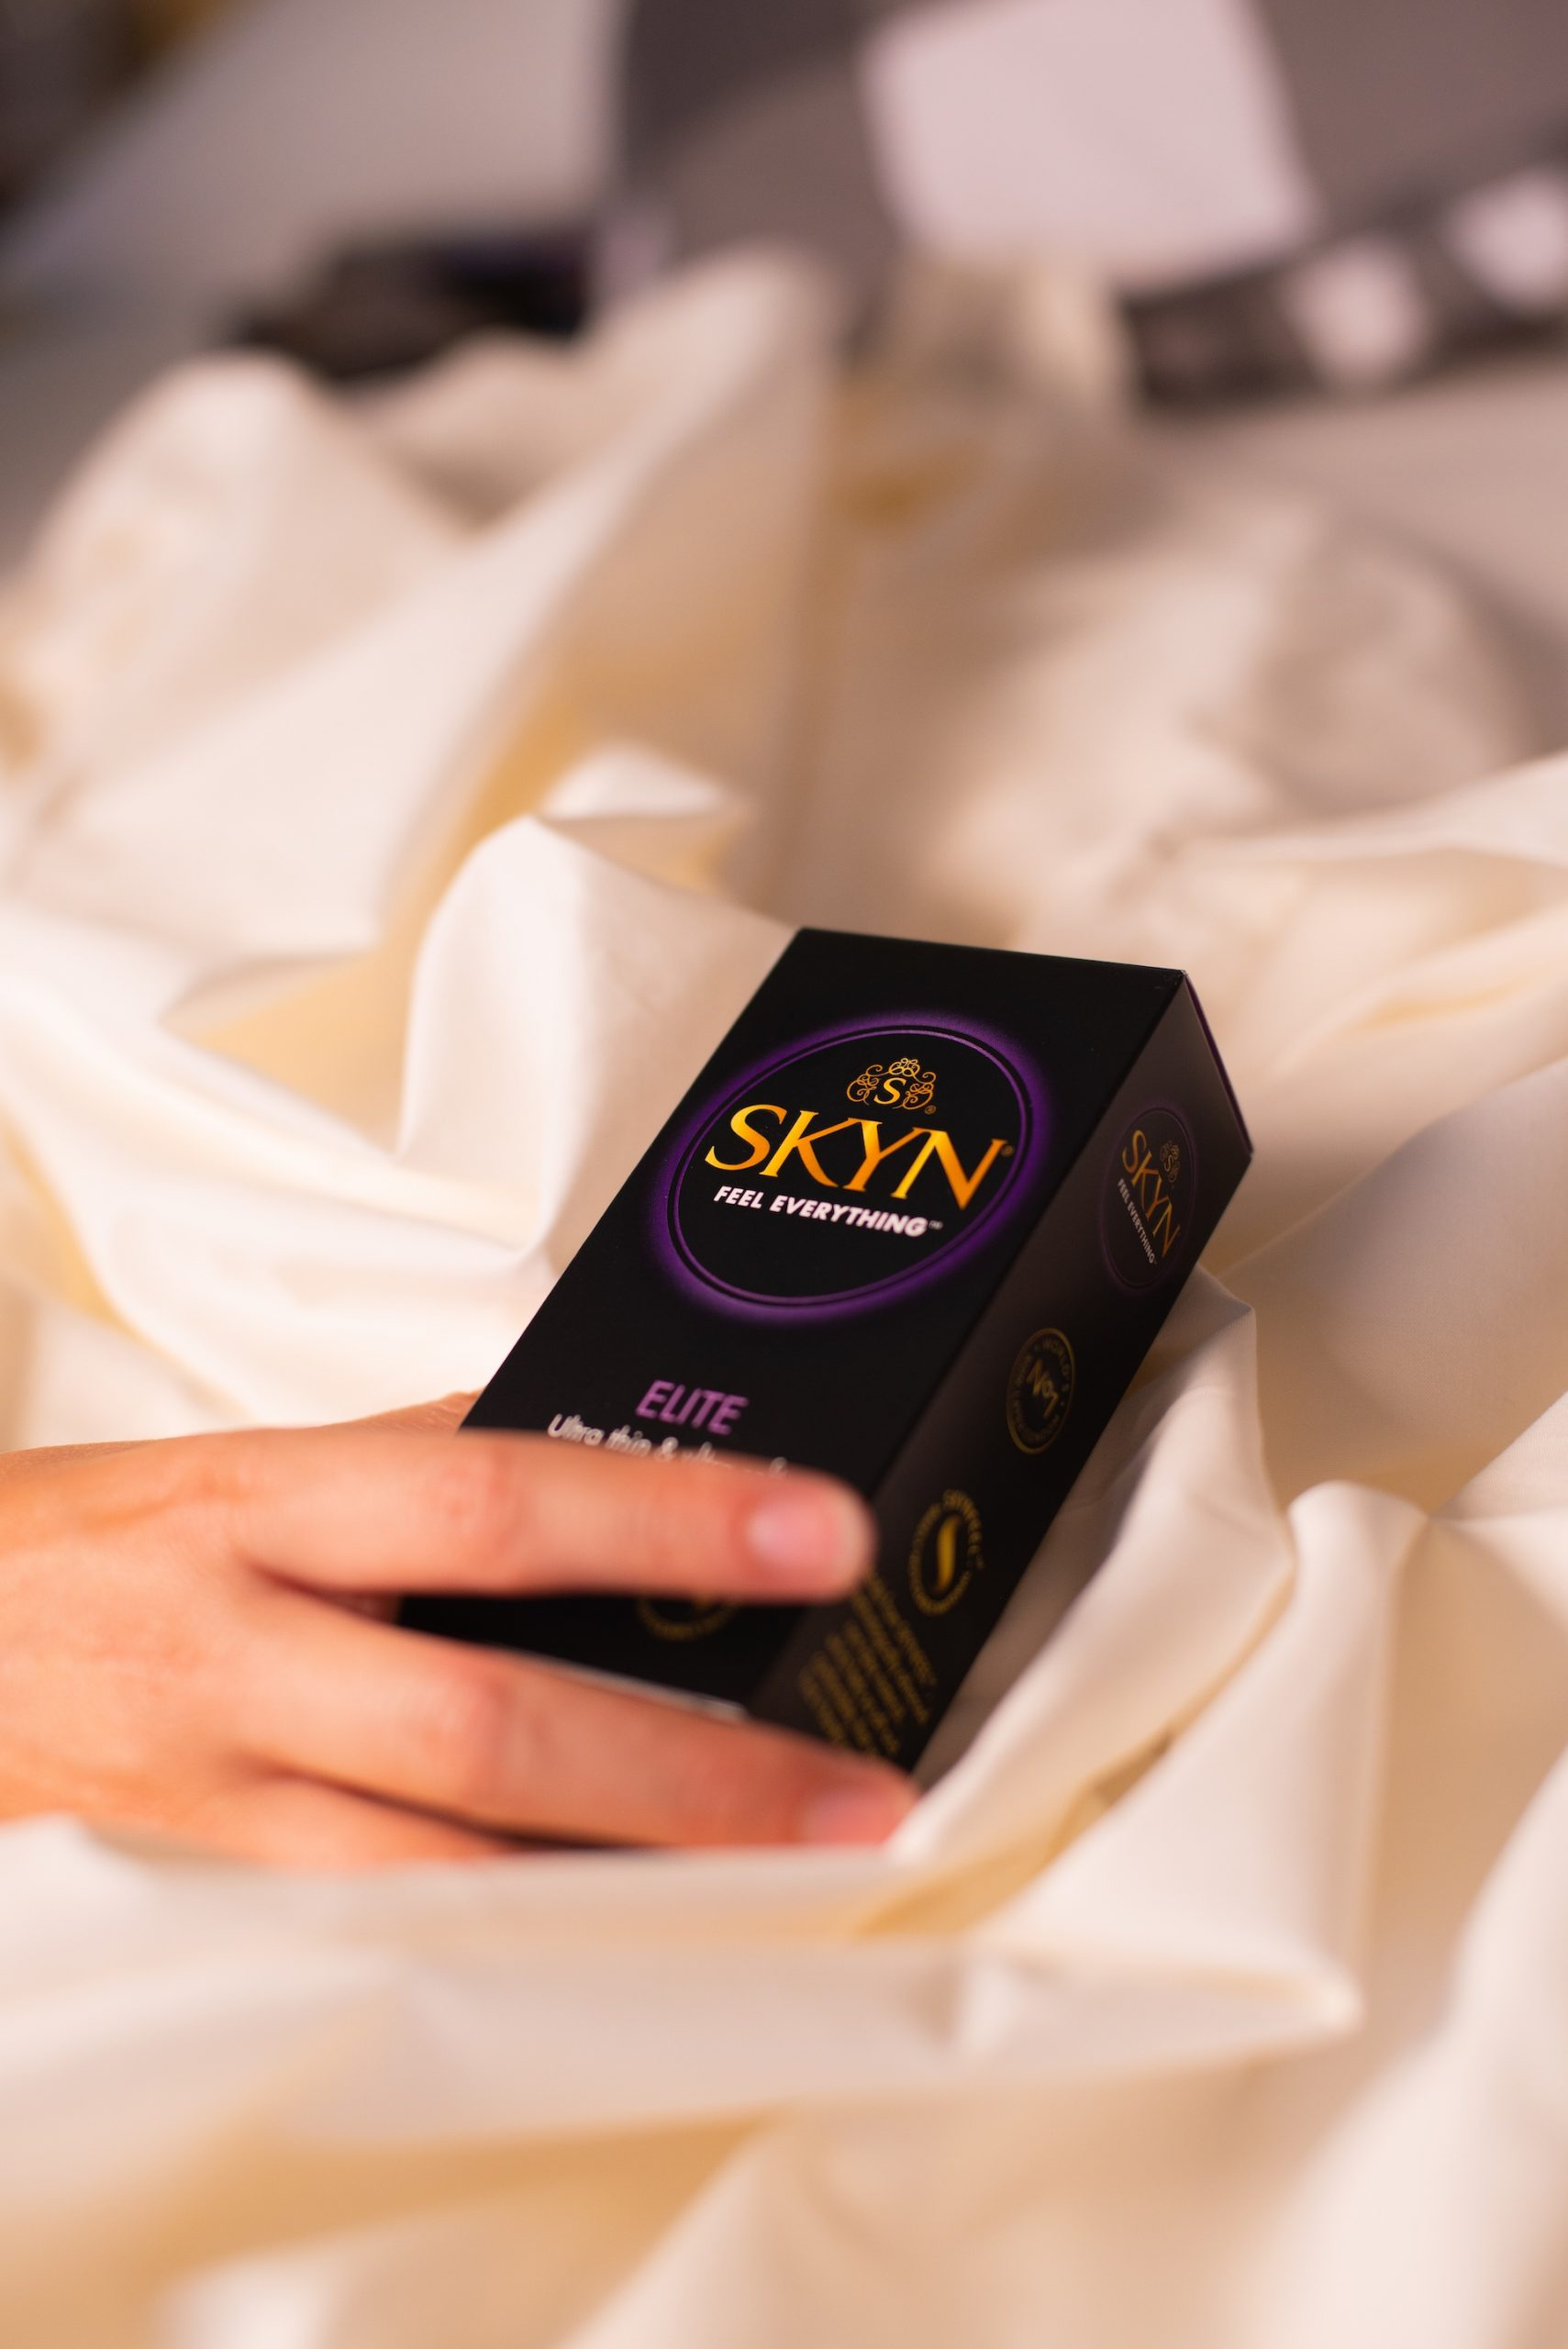 Hand reaching over a SKYN Elite condom box